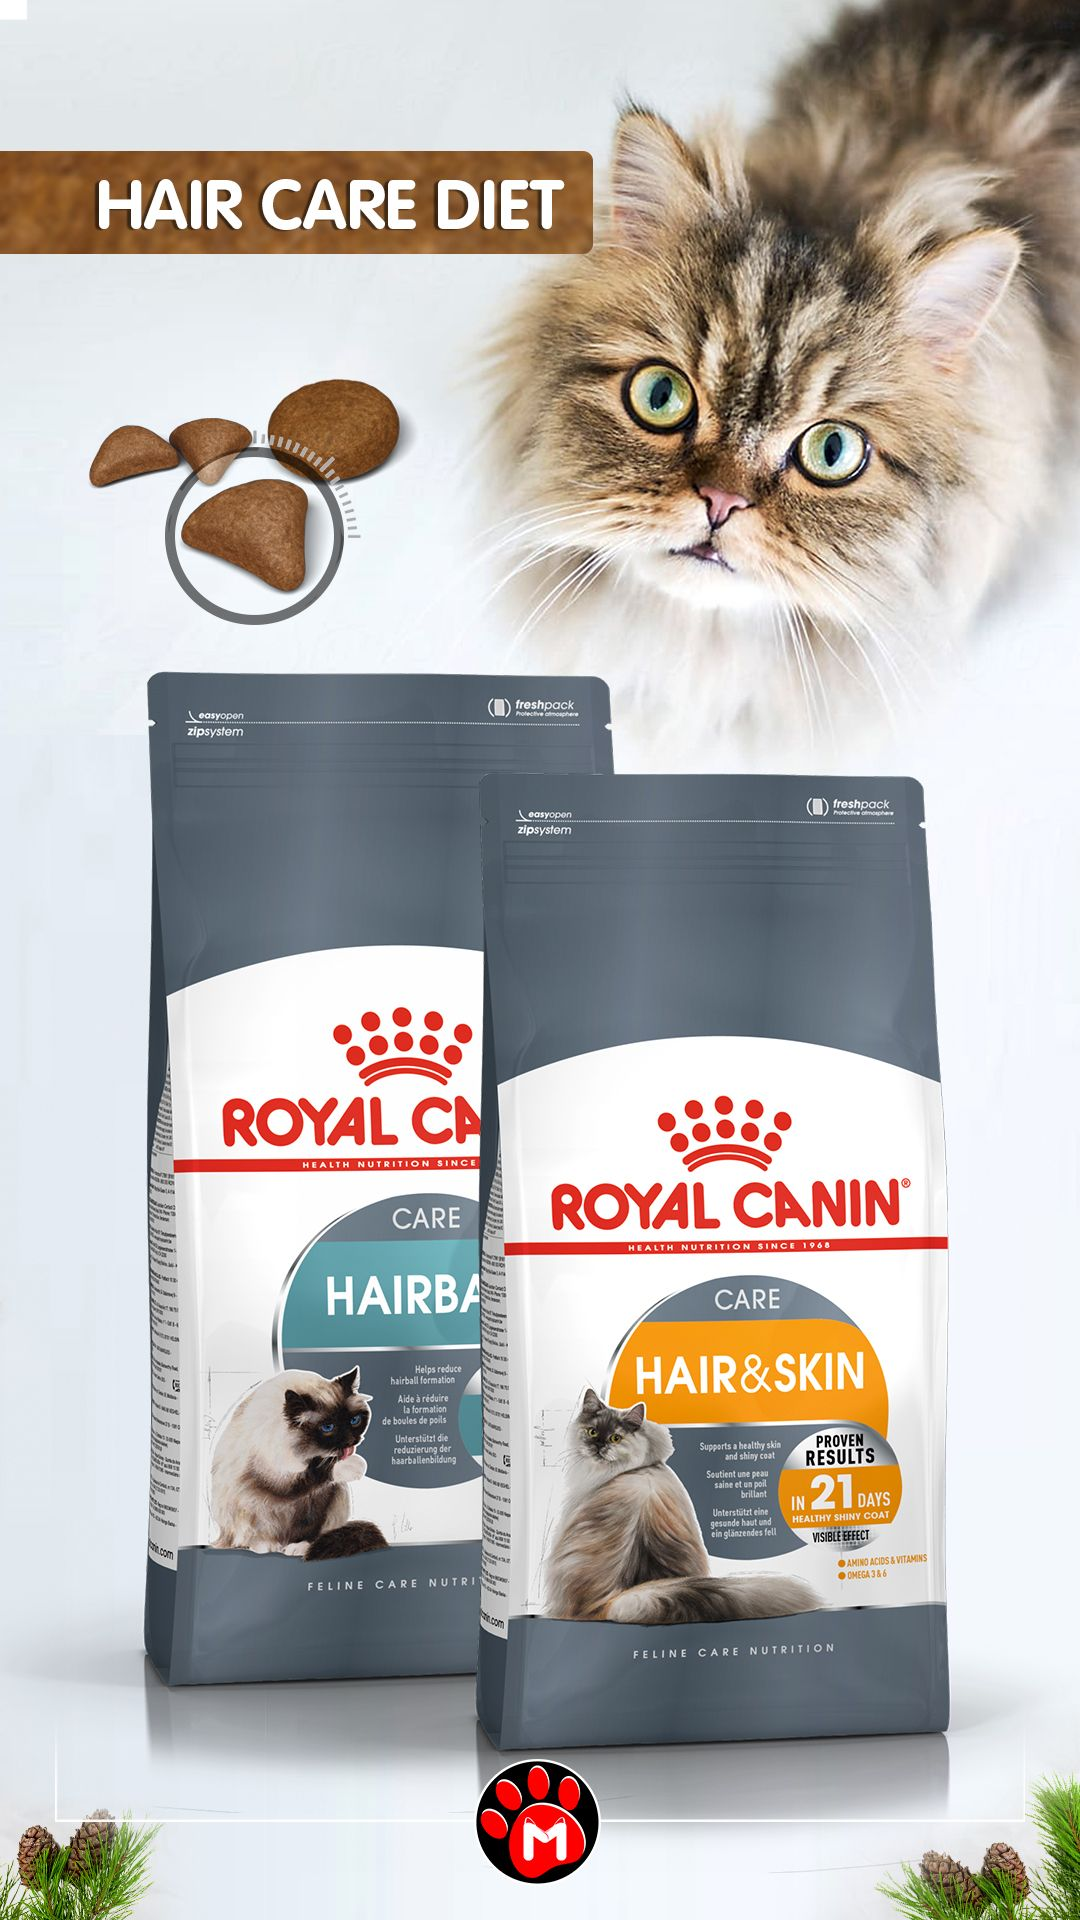 Hair Care Diet For Cats With Royal Canin In 2020 Hair Care Diet Dry Cat Food Royal Canin